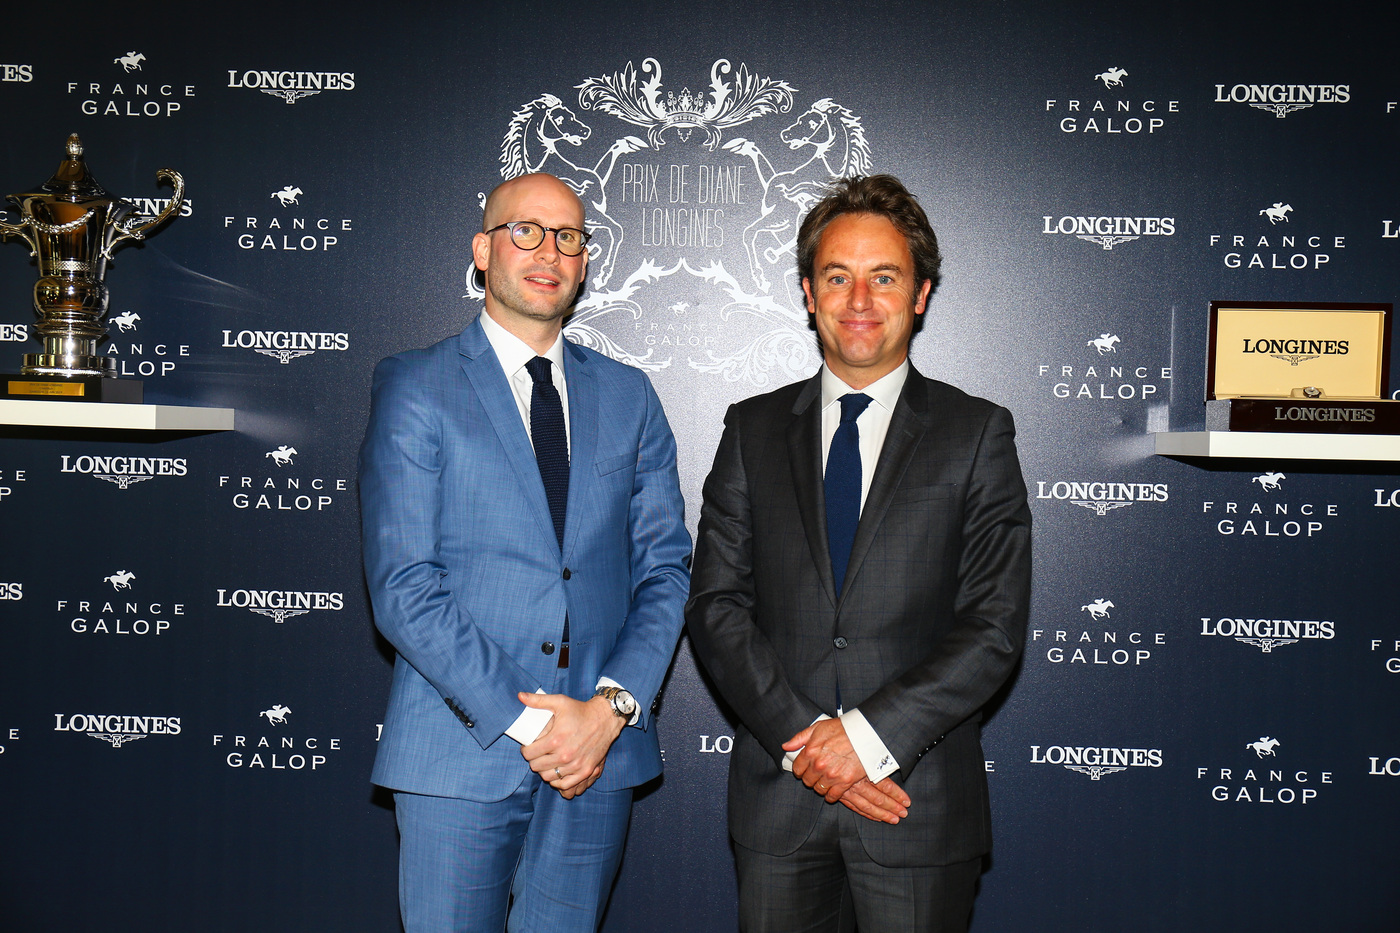 Longines Flat Racing Event: Simon Baker is back for the 2019 edition of the Prix de Diane Longines, the epitome of elegance  3